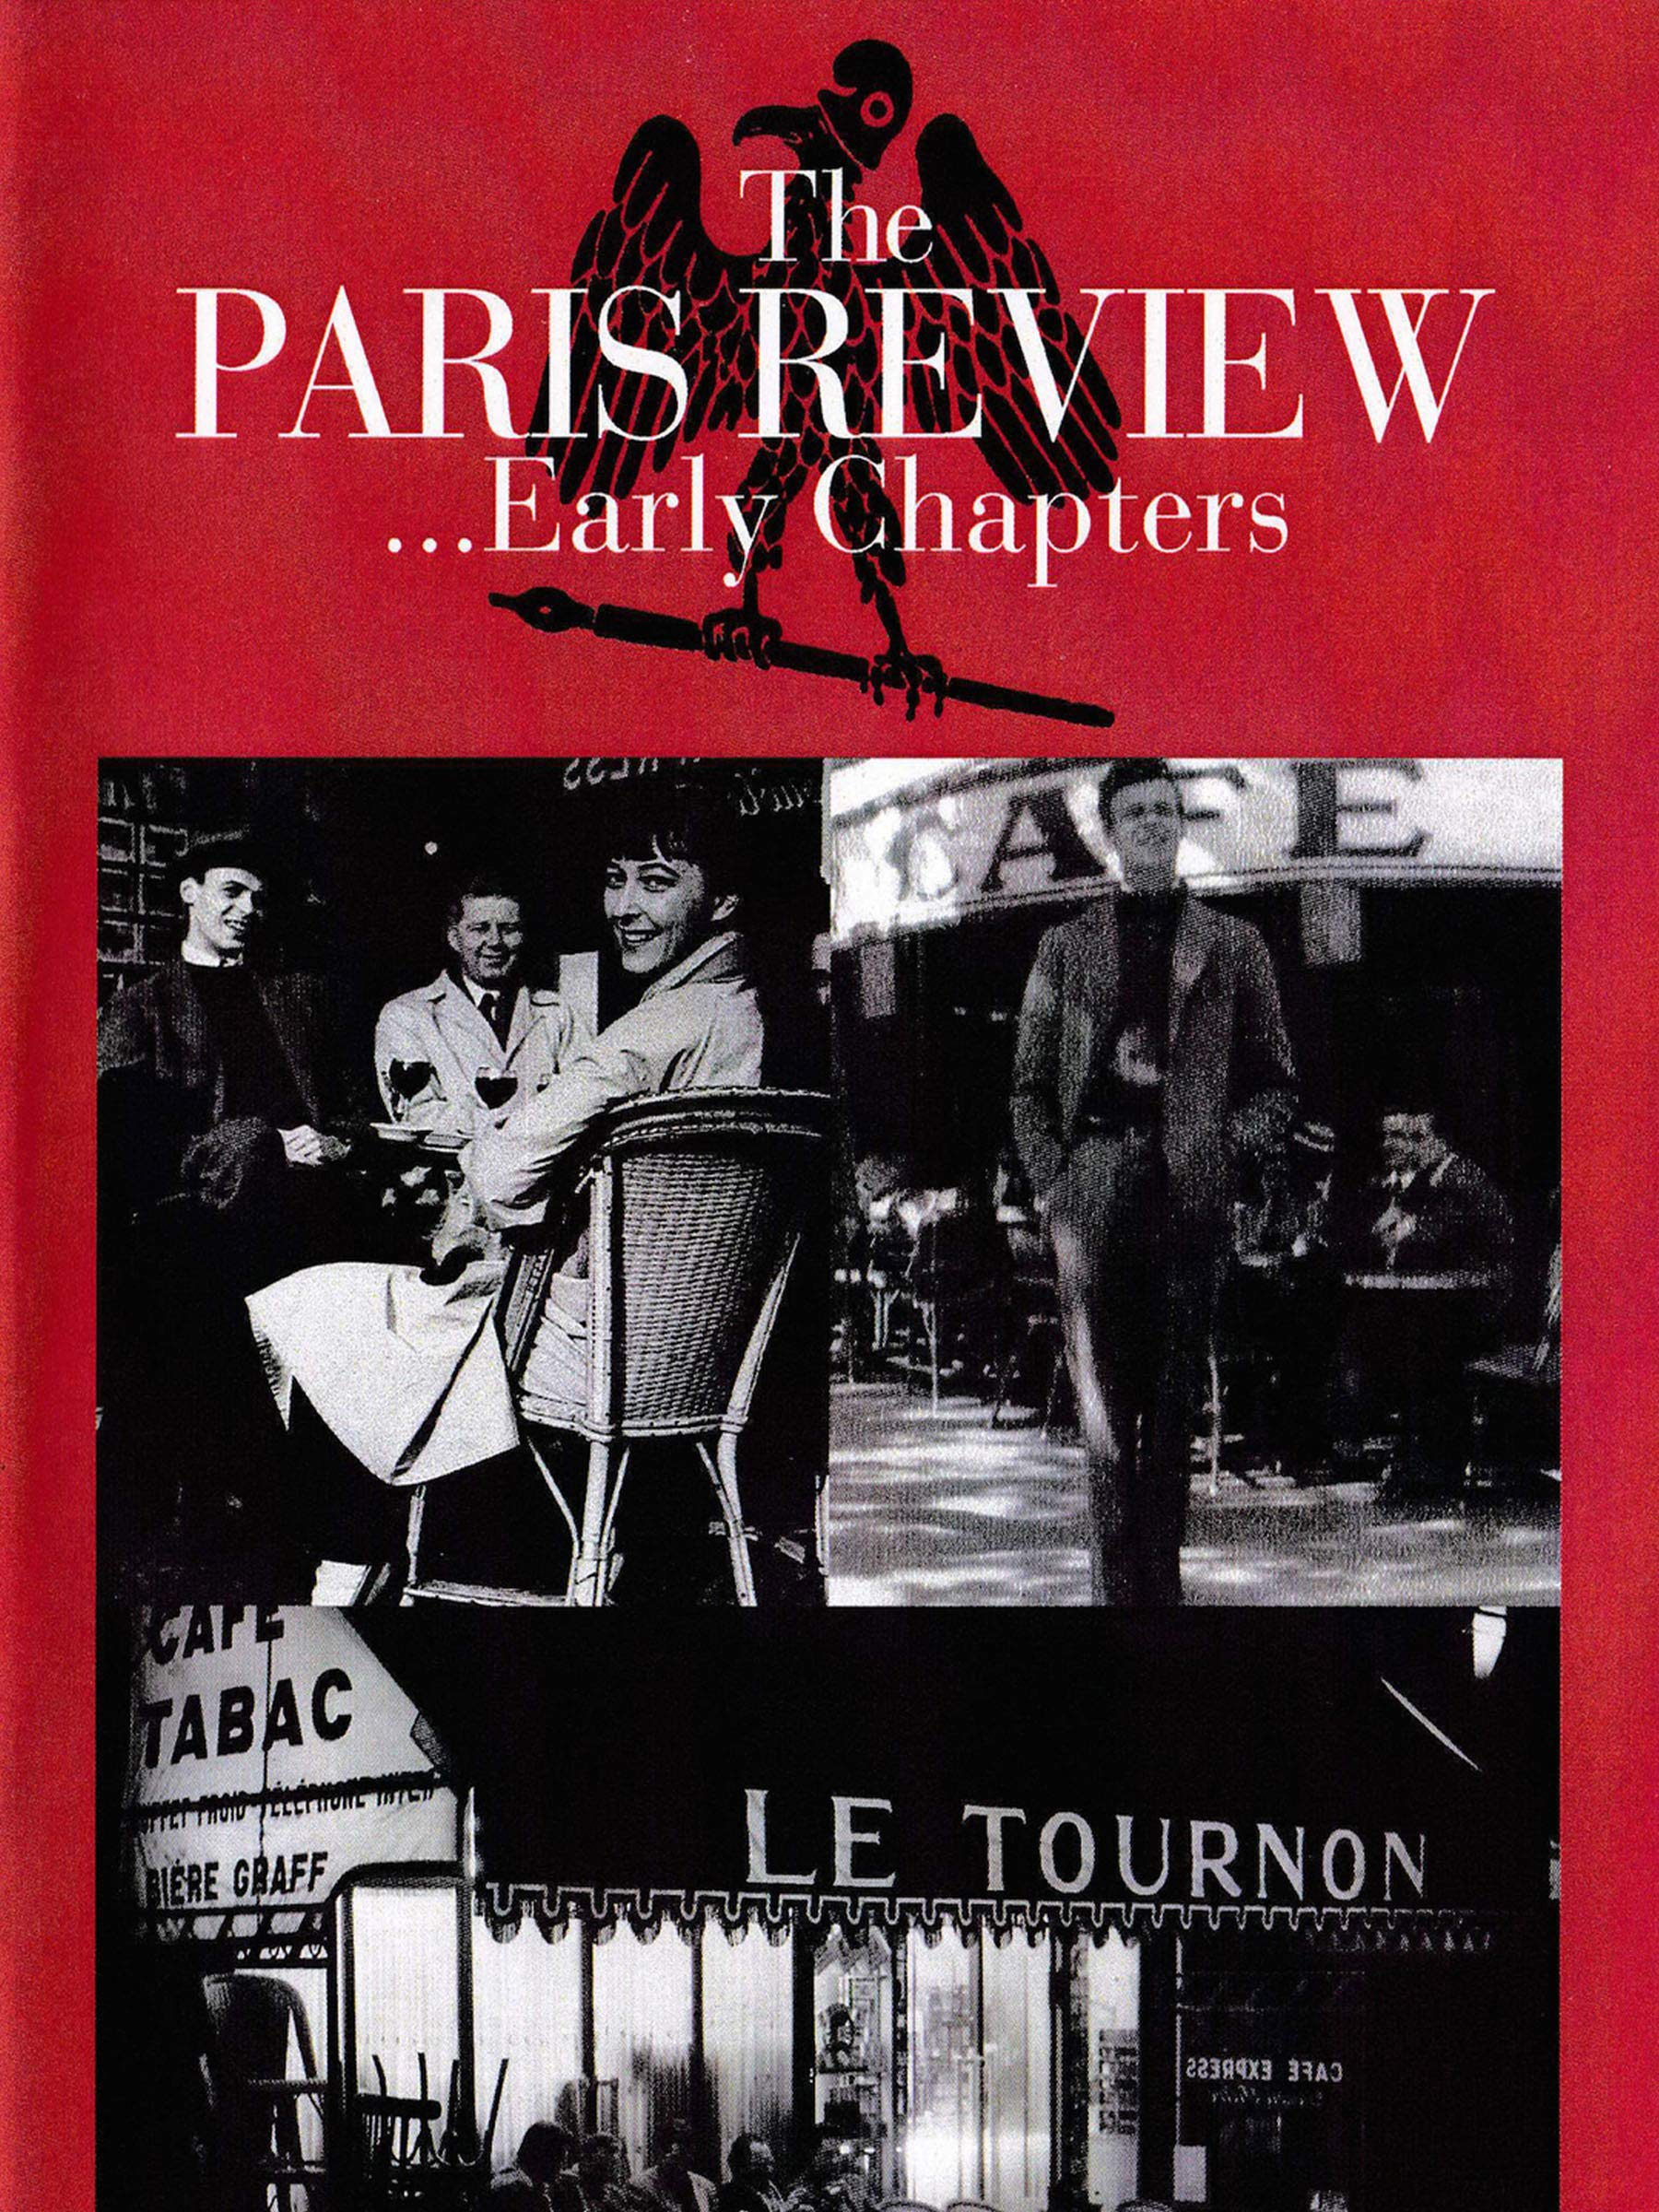 The Paris Review: Early Chapters on Amazon Prime Instant Video UK